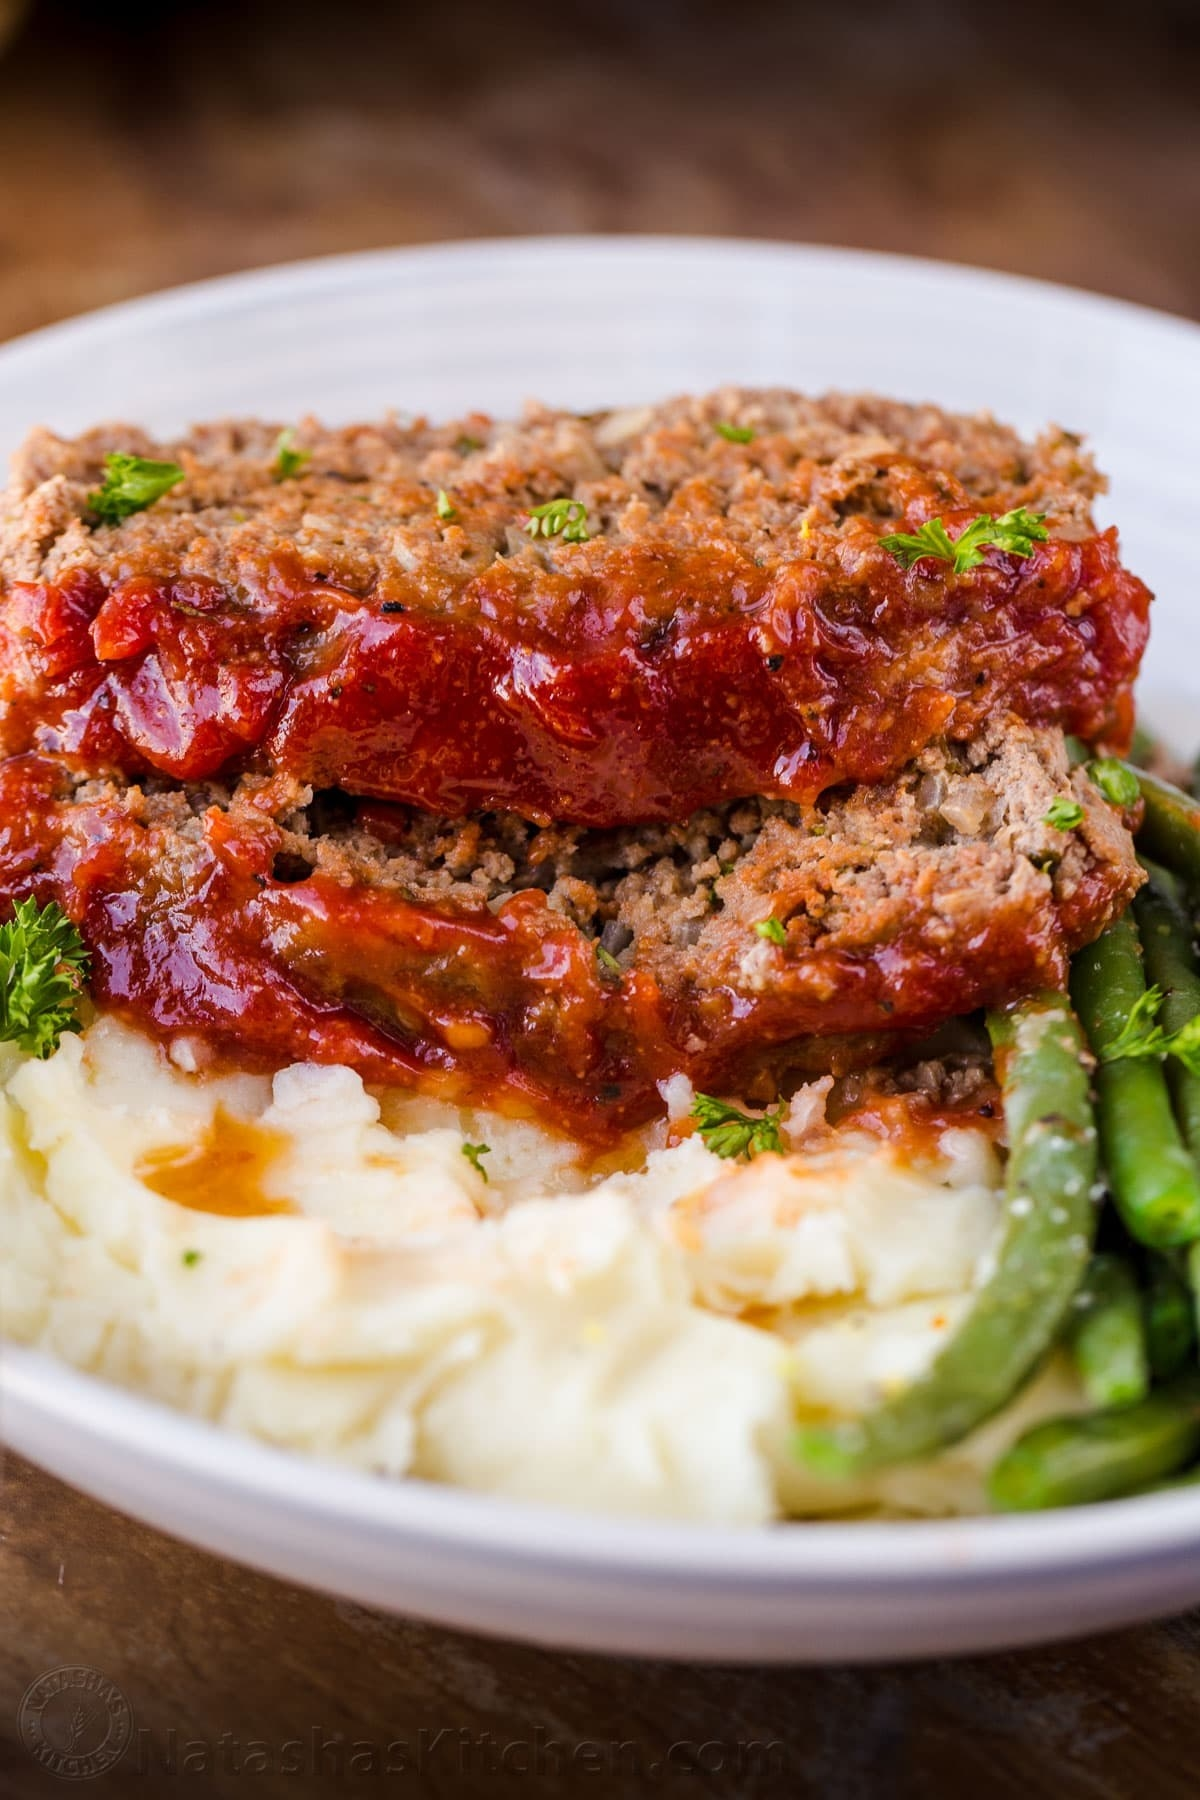 Two slices of meat loaf with ketchup on a bed of mashed potatoes with a side of bright green beans